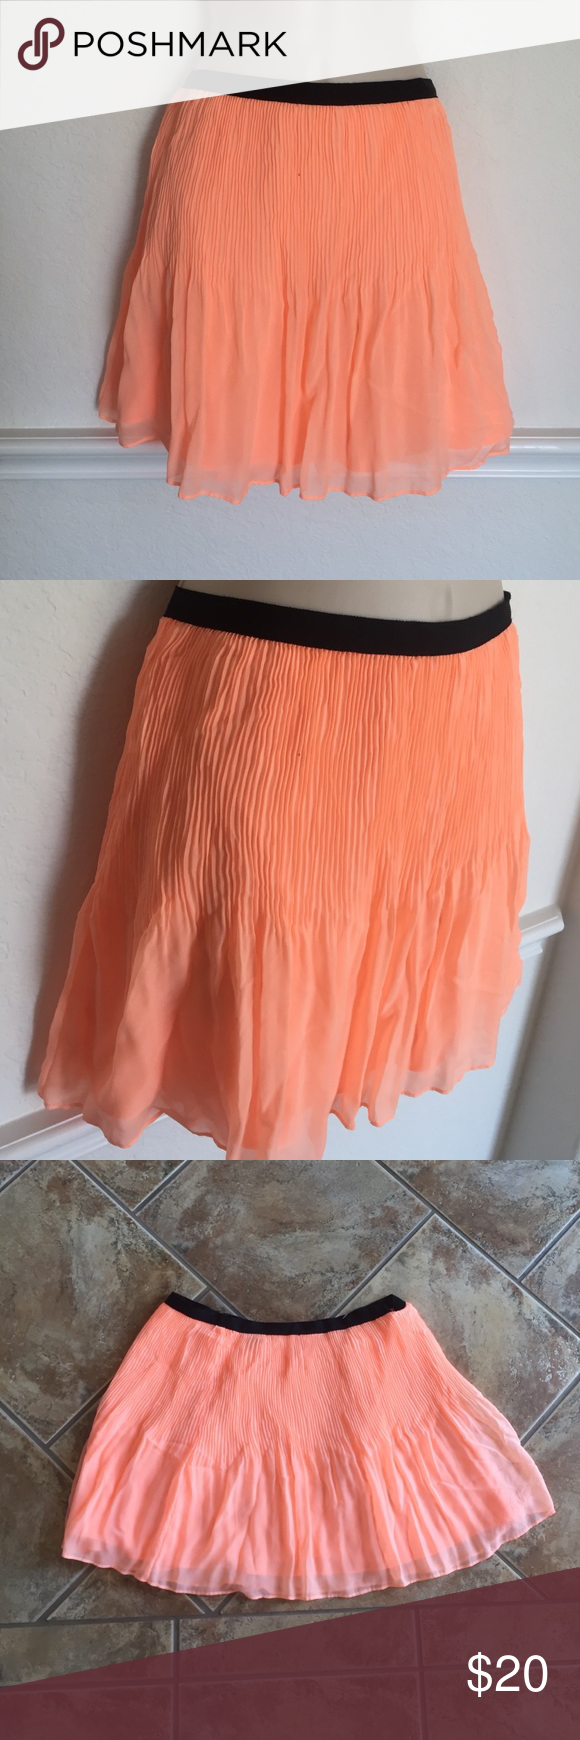 Victoria's Secret Neon Orange Twirl Skirt Victoria's Secret Neon Orange Twirl Skirt size 6 Victoria's Secret Skirts Mini